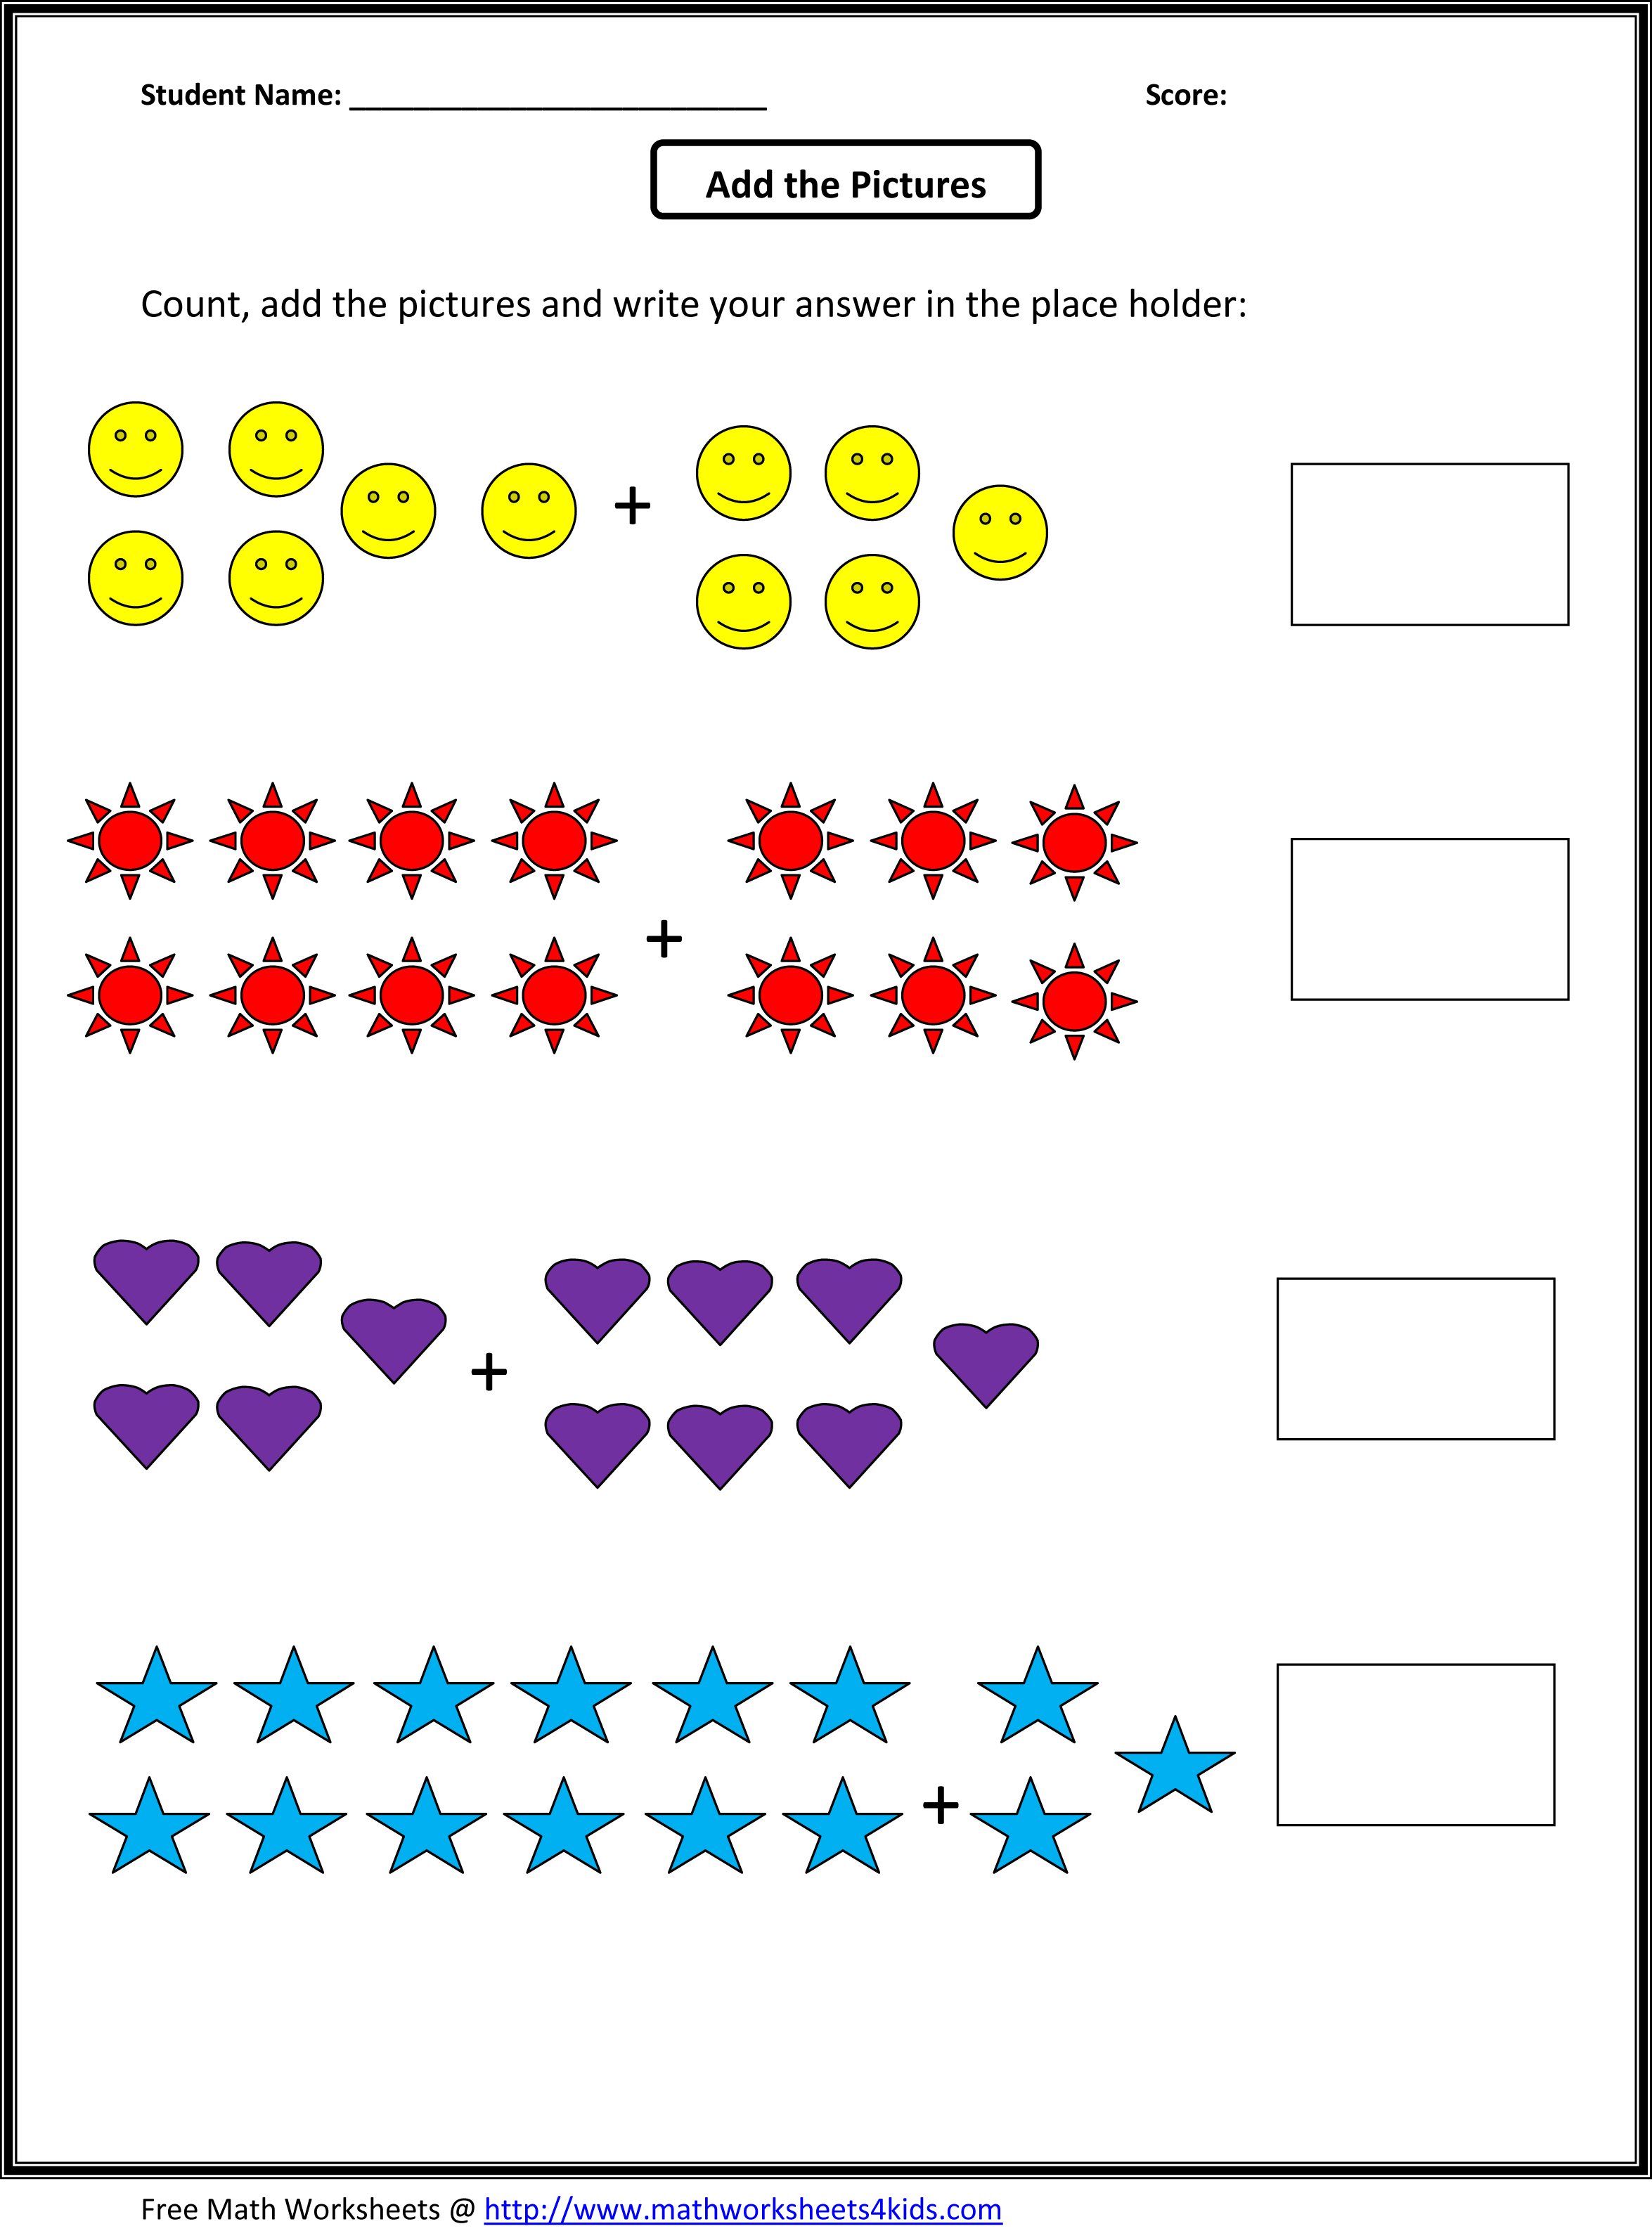 Weirdmailus  Pleasing Grade  Maths Worksheet  Reocurent With Lovely Math Worksheets For St Grade Free  Reocurent With Charming Grade  Measurement Worksheets Also Science Worksheets Printables In Addition Spelling Rules For Kids Worksheets And Word Problems For St Grade Worksheets As Well As Human Digestion Worksheet Additionally Super Teacher Worksheets Action Verbs From Reocurentcom With Weirdmailus  Lovely Grade  Maths Worksheet  Reocurent With Charming Math Worksheets For St Grade Free  Reocurent And Pleasing Grade  Measurement Worksheets Also Science Worksheets Printables In Addition Spelling Rules For Kids Worksheets From Reocurentcom